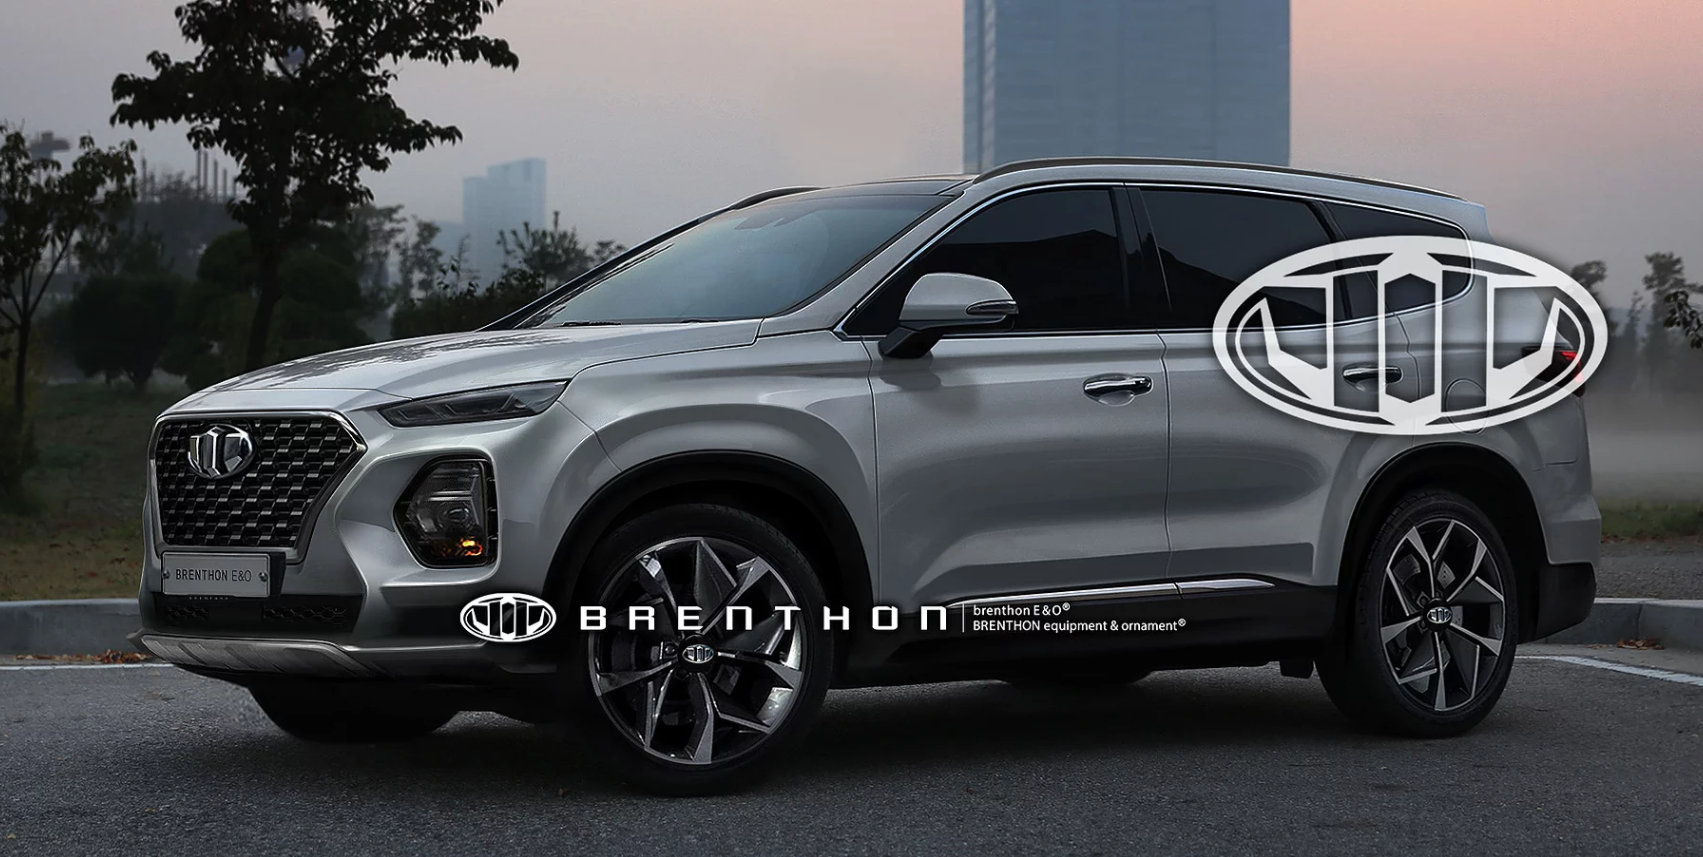 2019 Hyundai Santa Fe Rendered - Korean Car Blog